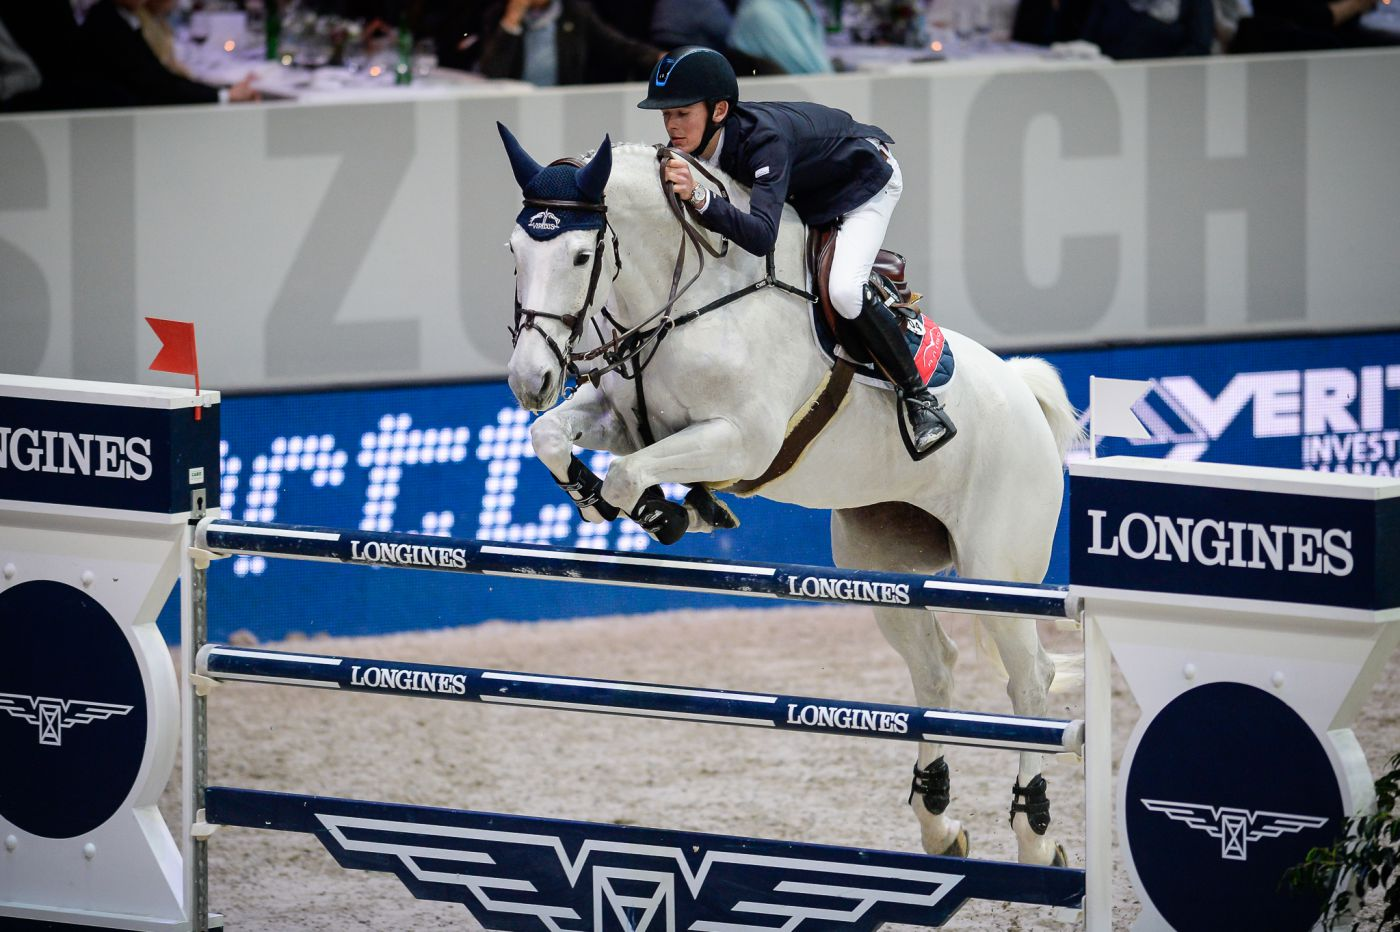 Longines Show Jumping Event: Sergio Alvarez Moya (ESP) wins the Swiss leg of the Longines FEI World Cup™ in Zurich 2